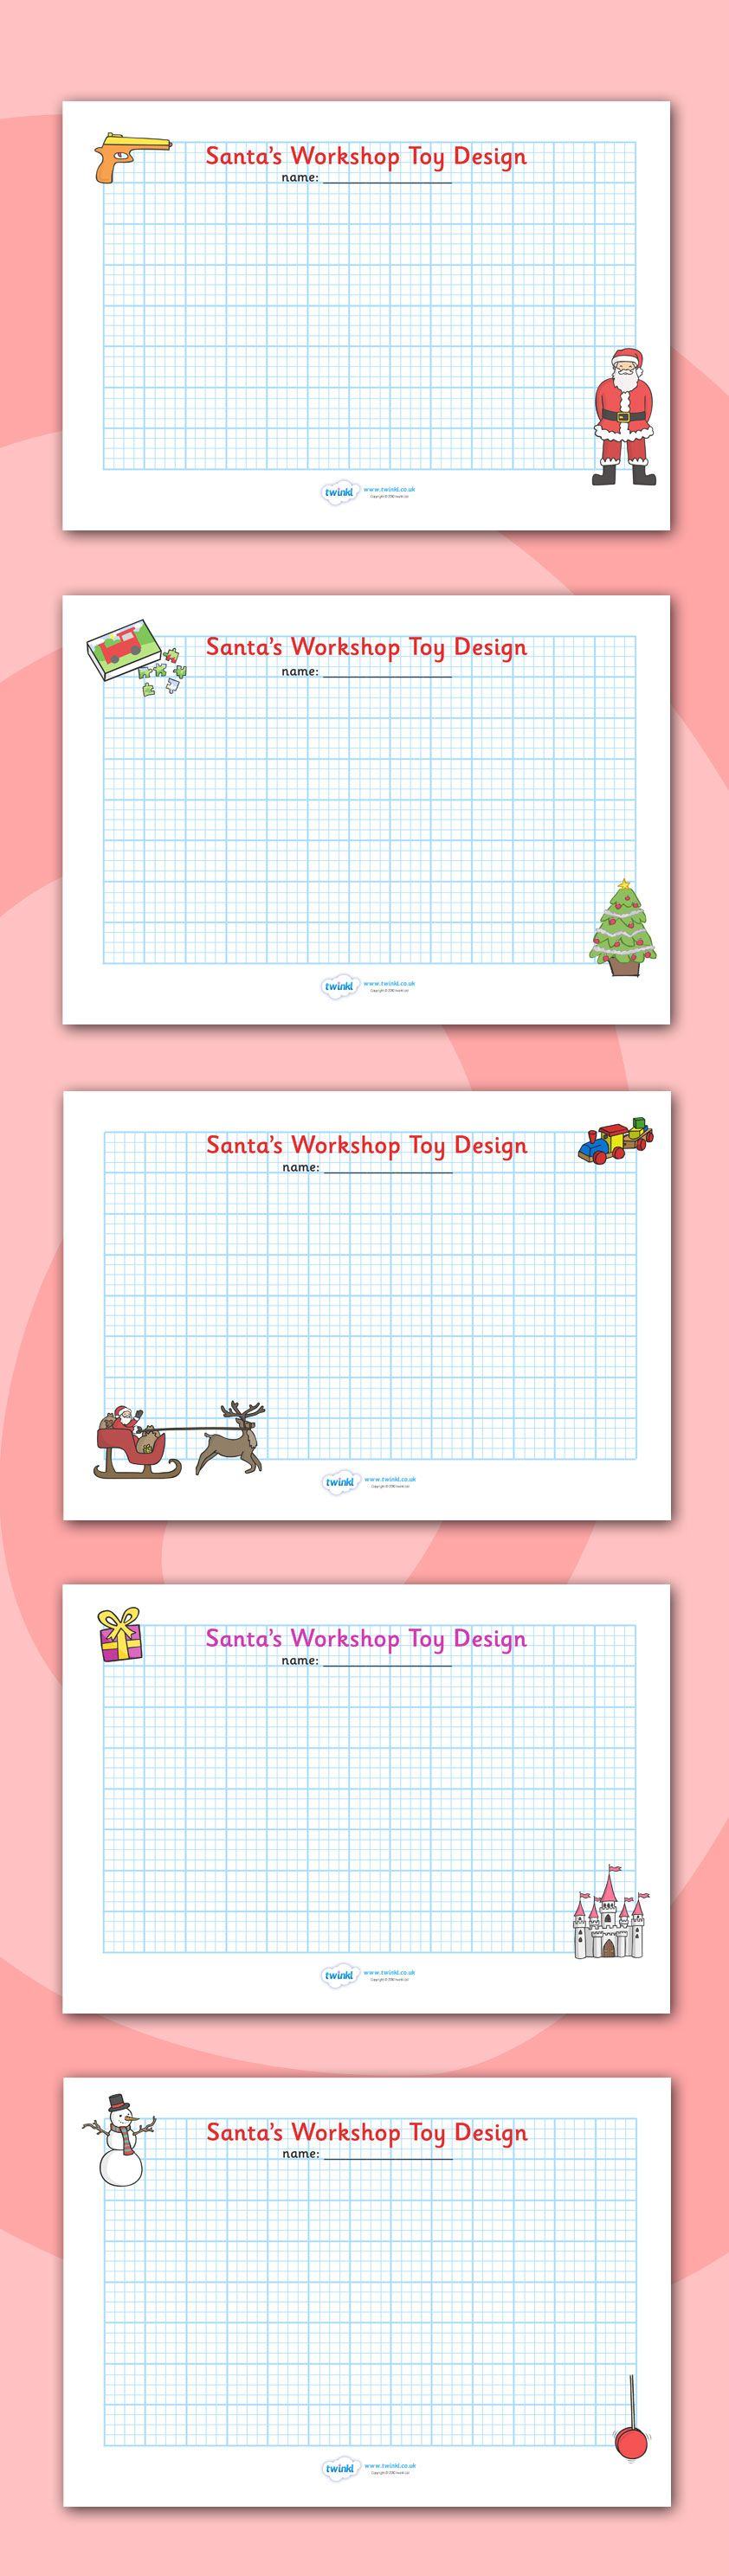 Christmas colouring in sheets twinkl - Twinkl Resources Christmas Toy Design Sheets